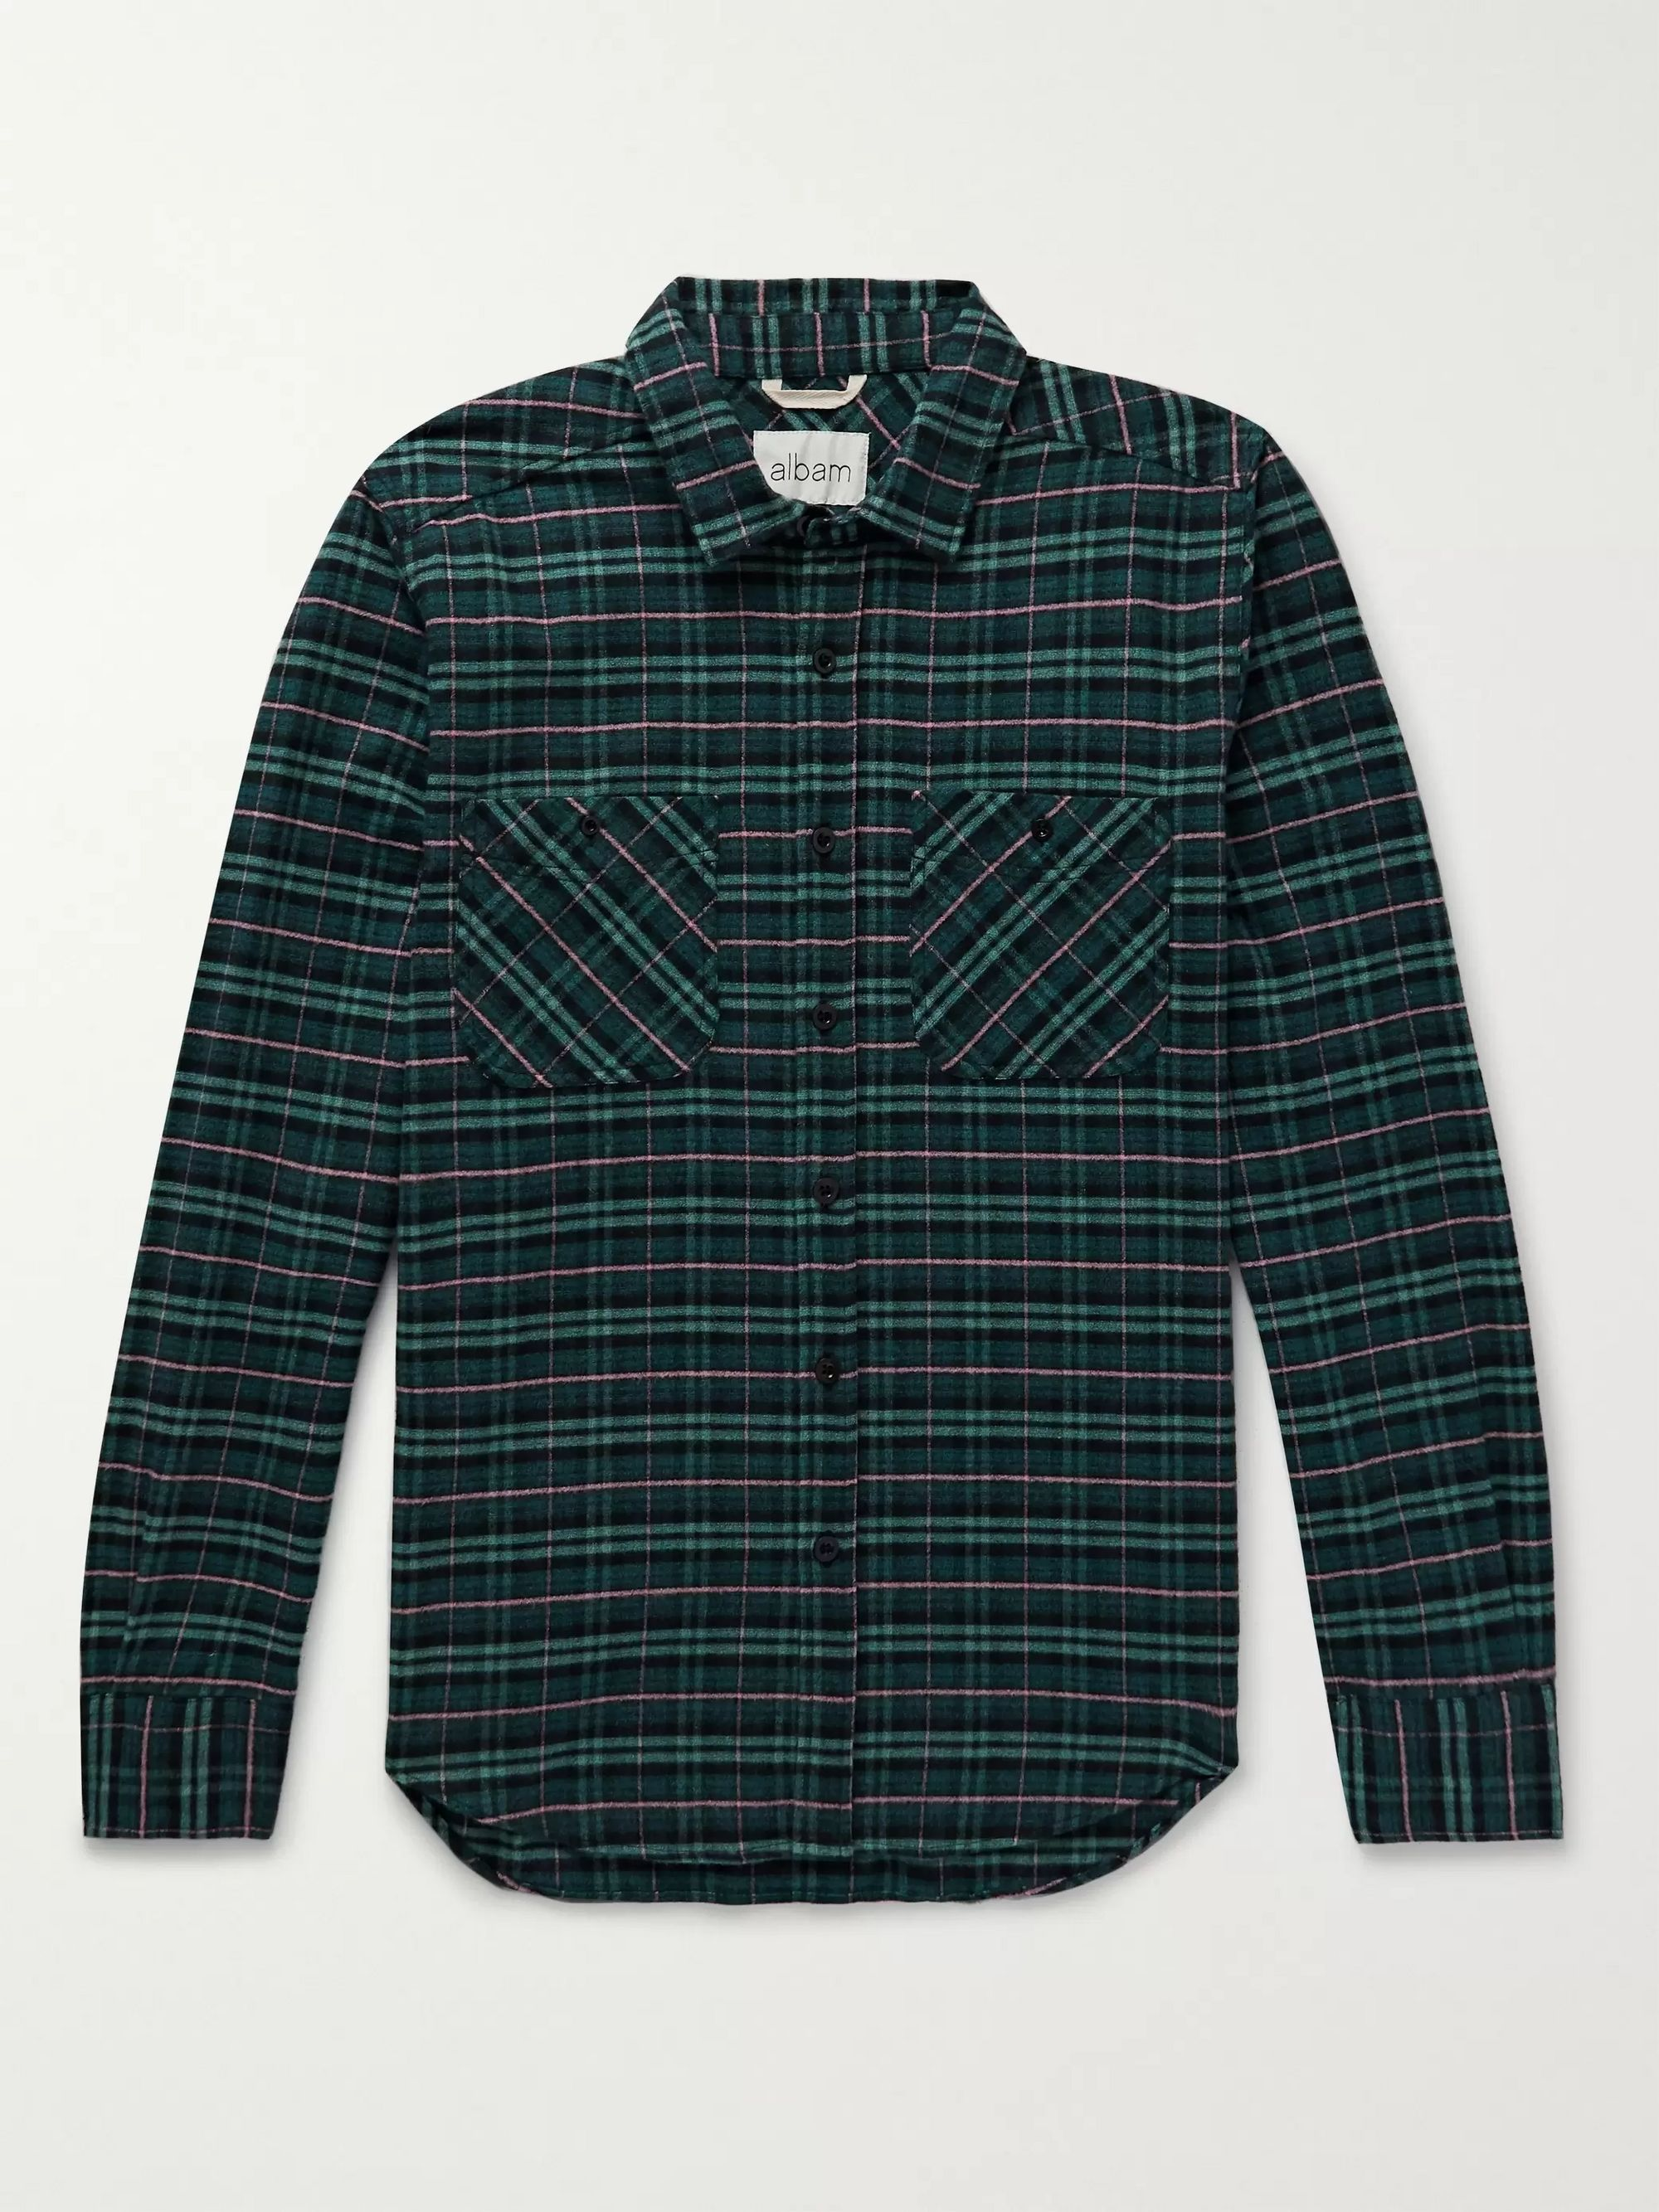 Albam Checked Cotton-Flannel Shirt